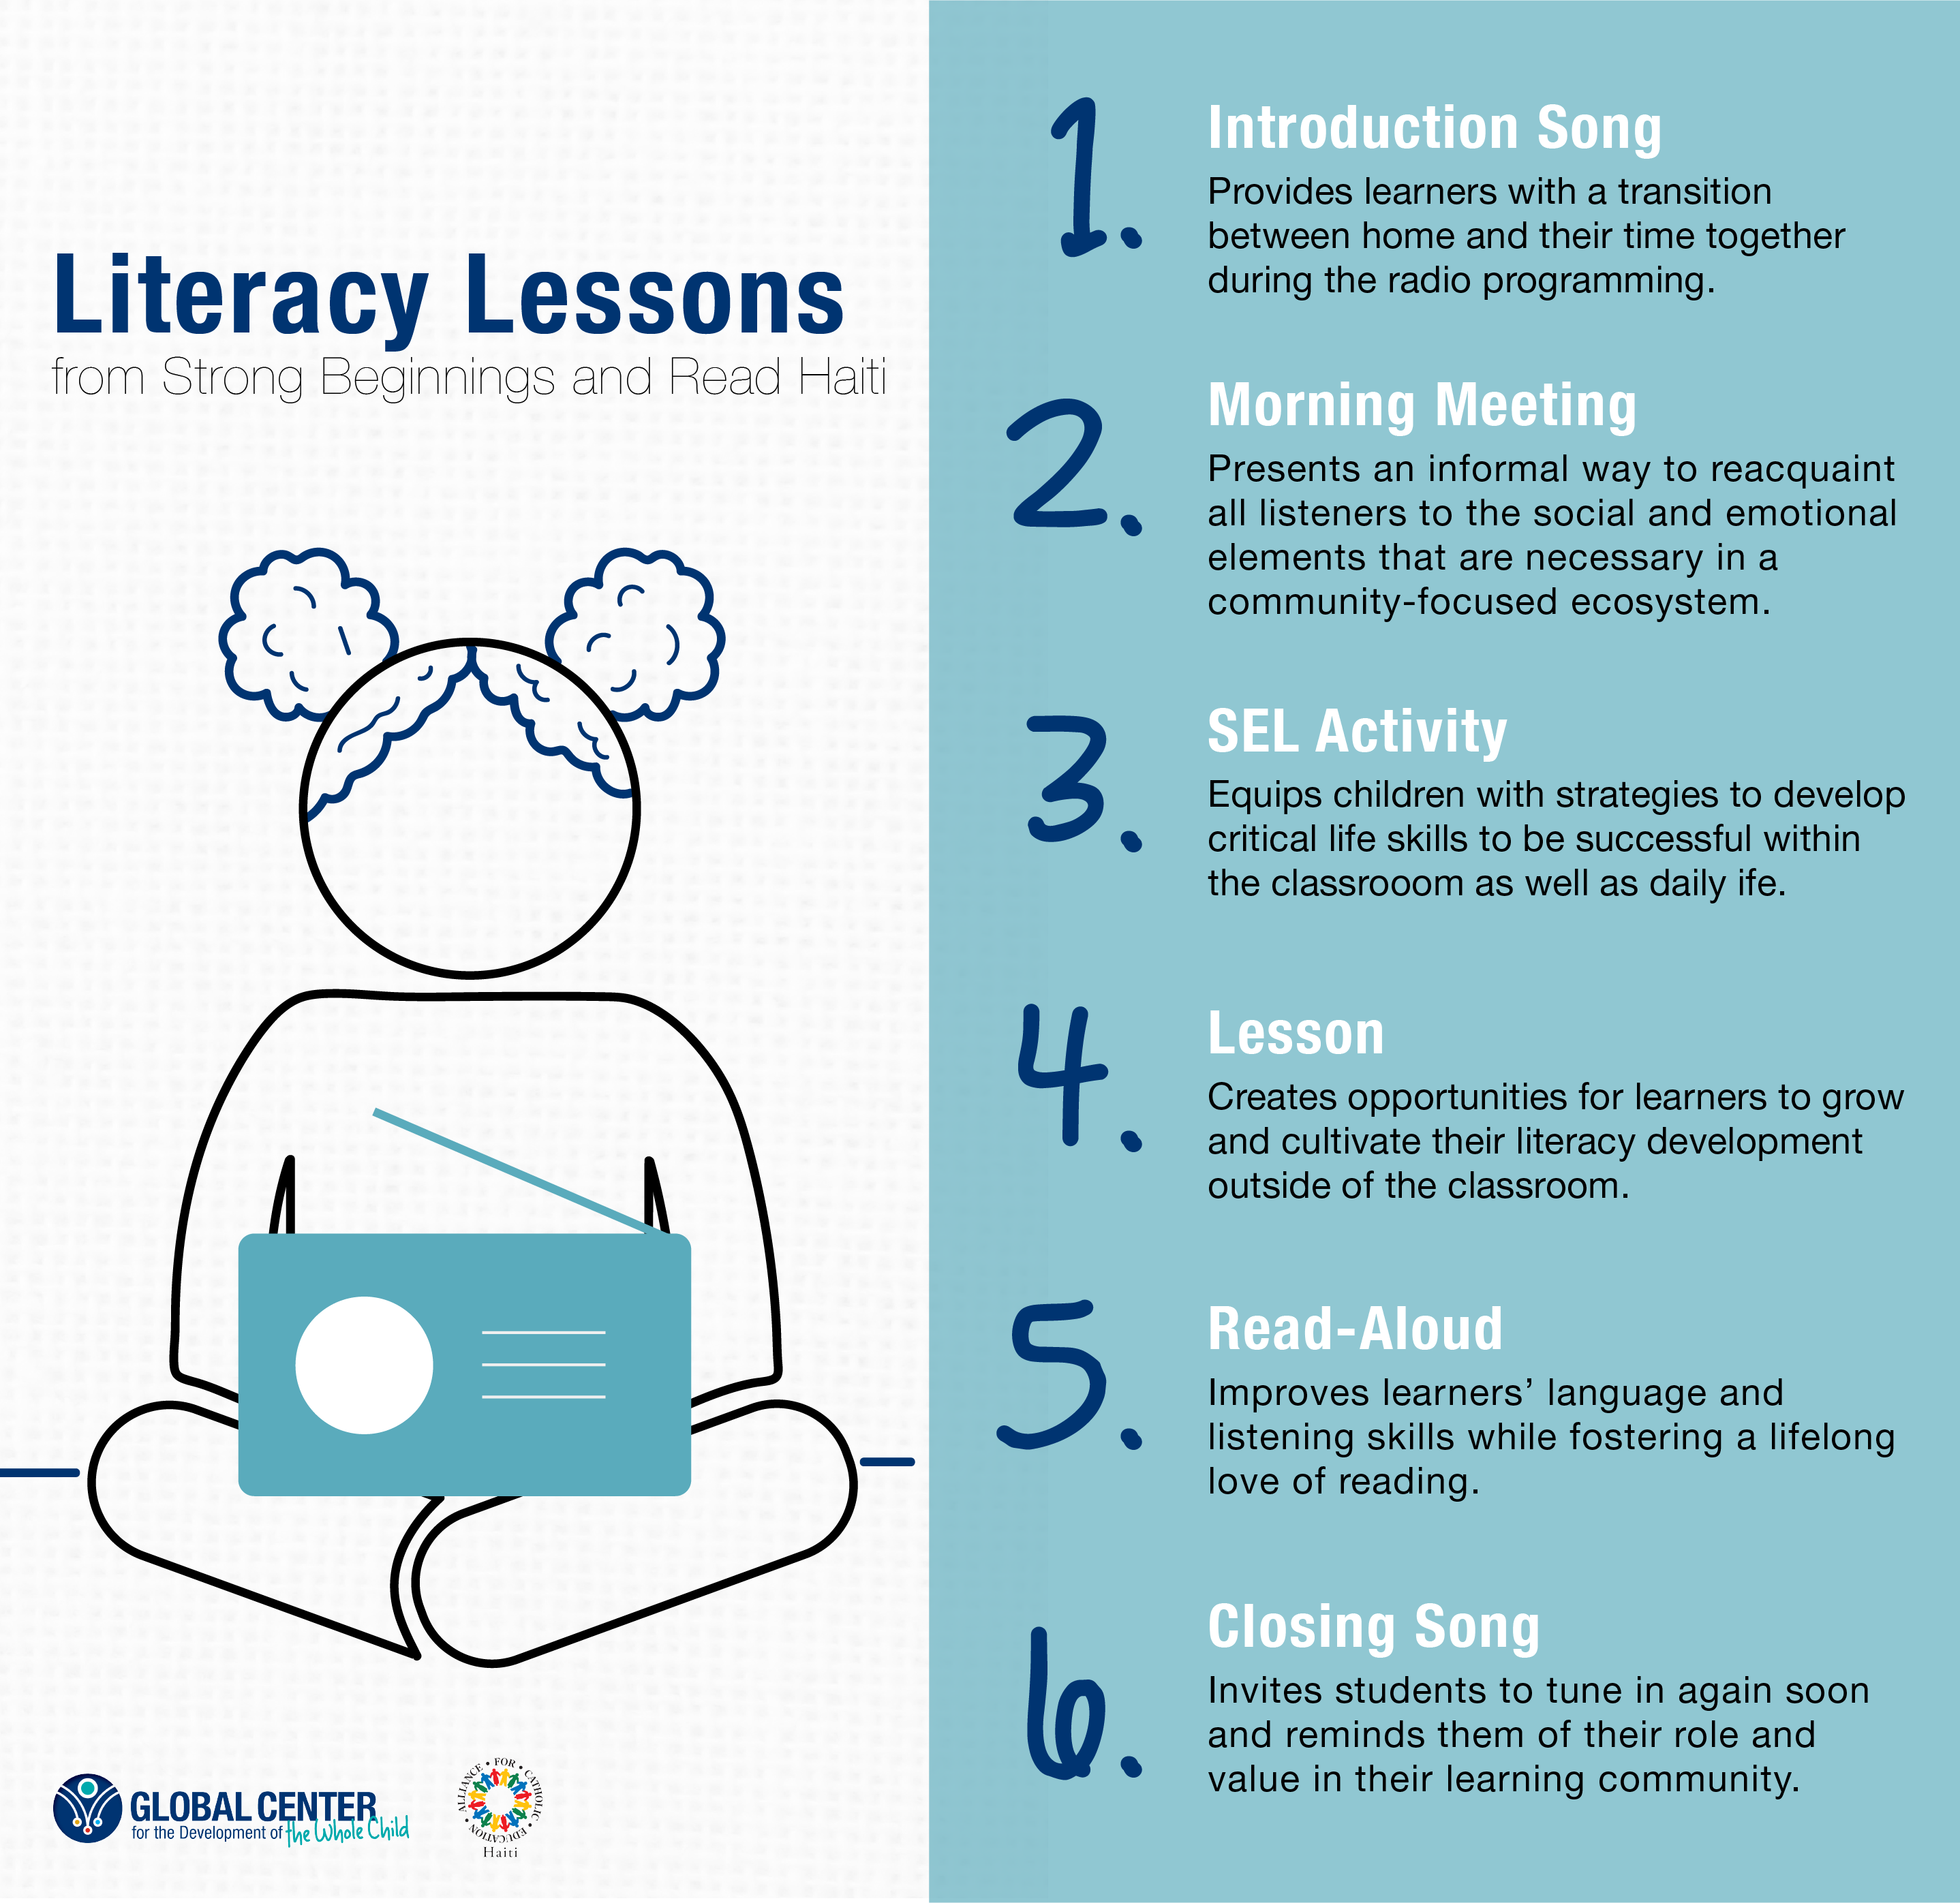 Read Haiti Strong Beginnings Literacy Lessons Radio Infographic